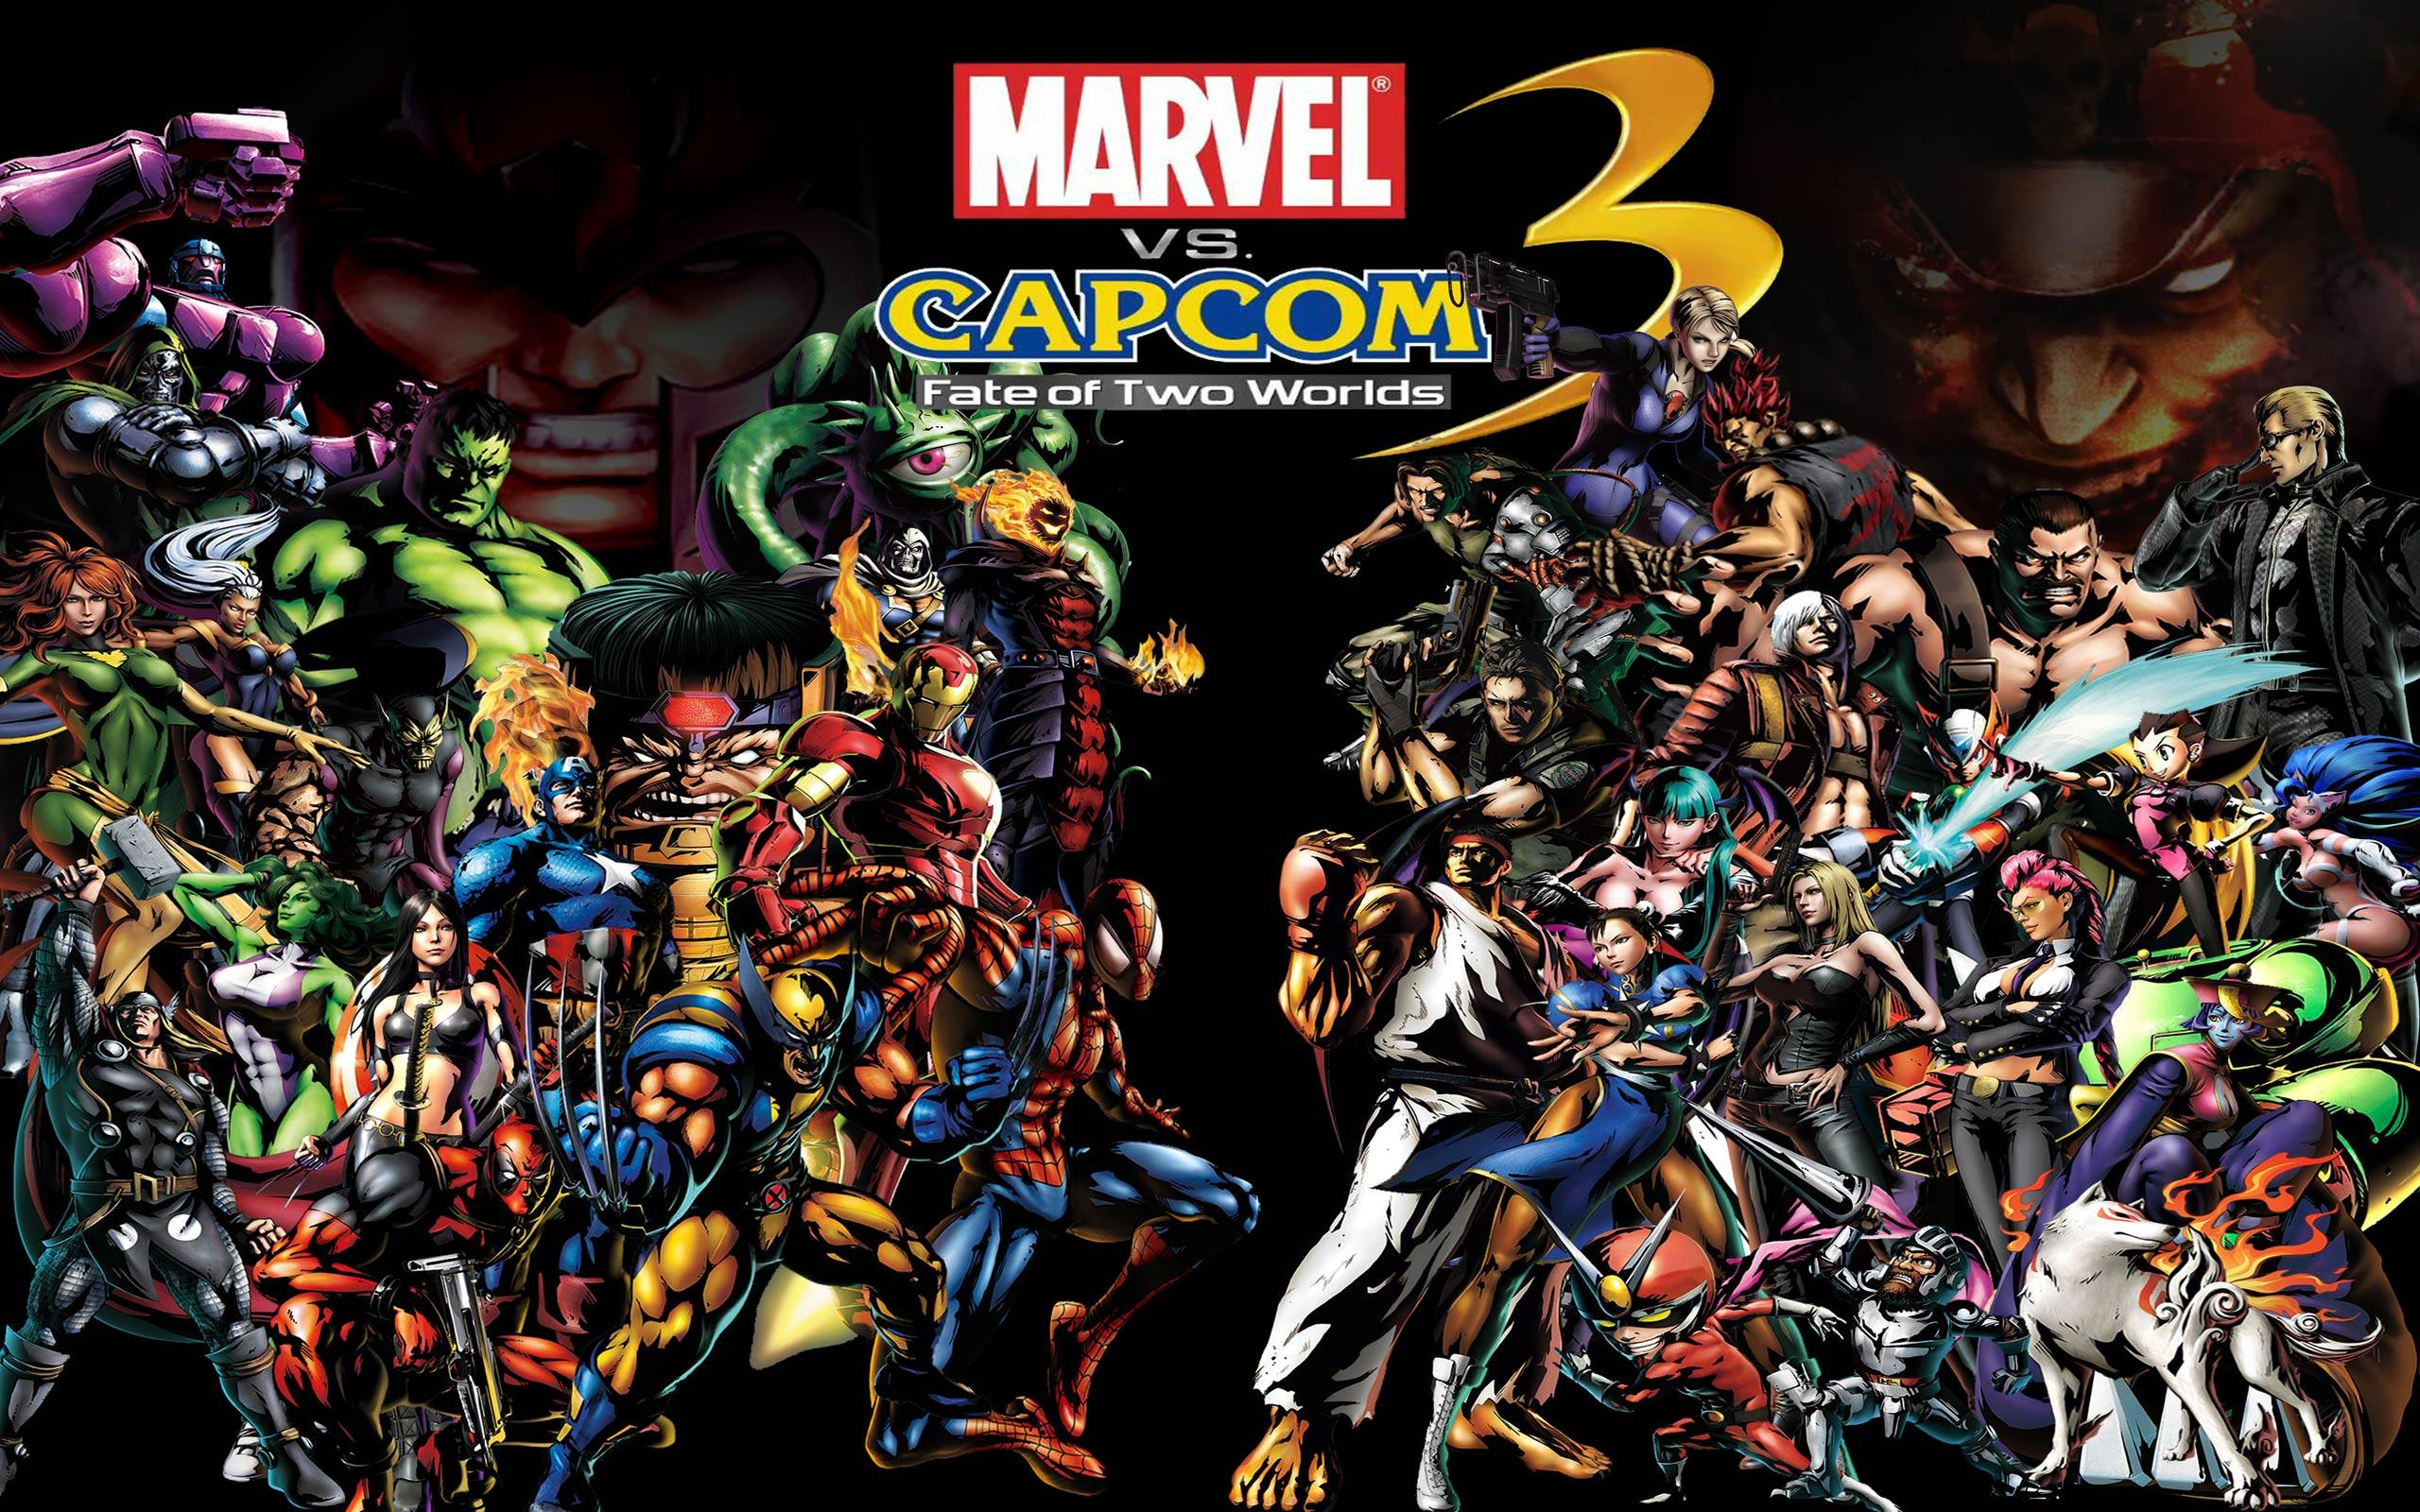 Ultimate Marvel vs. Capcom 3 wallpaper hd | Gaming Wallpapers HD ...